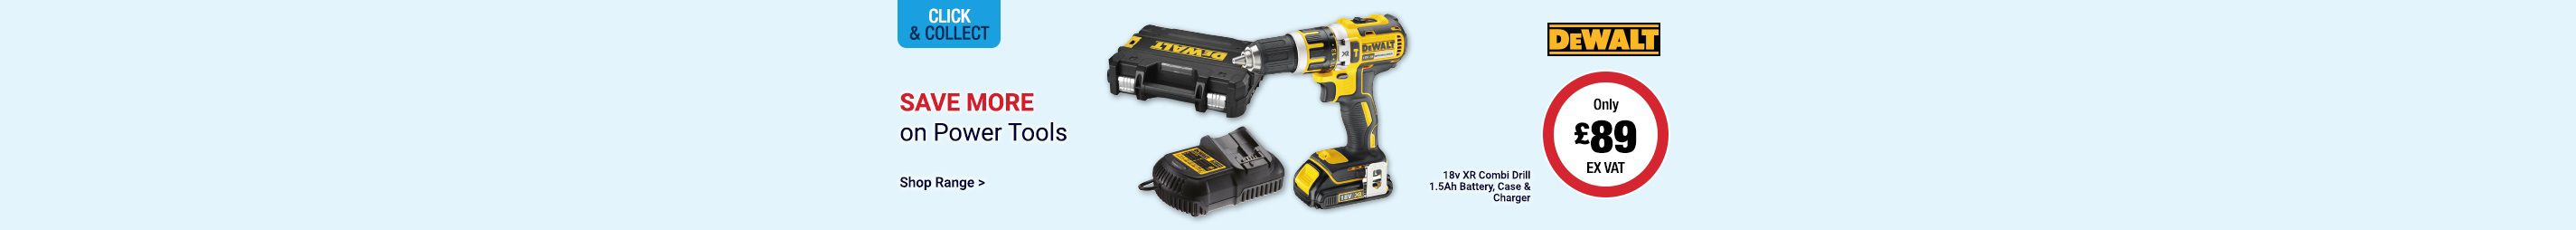 Save on Power Tools